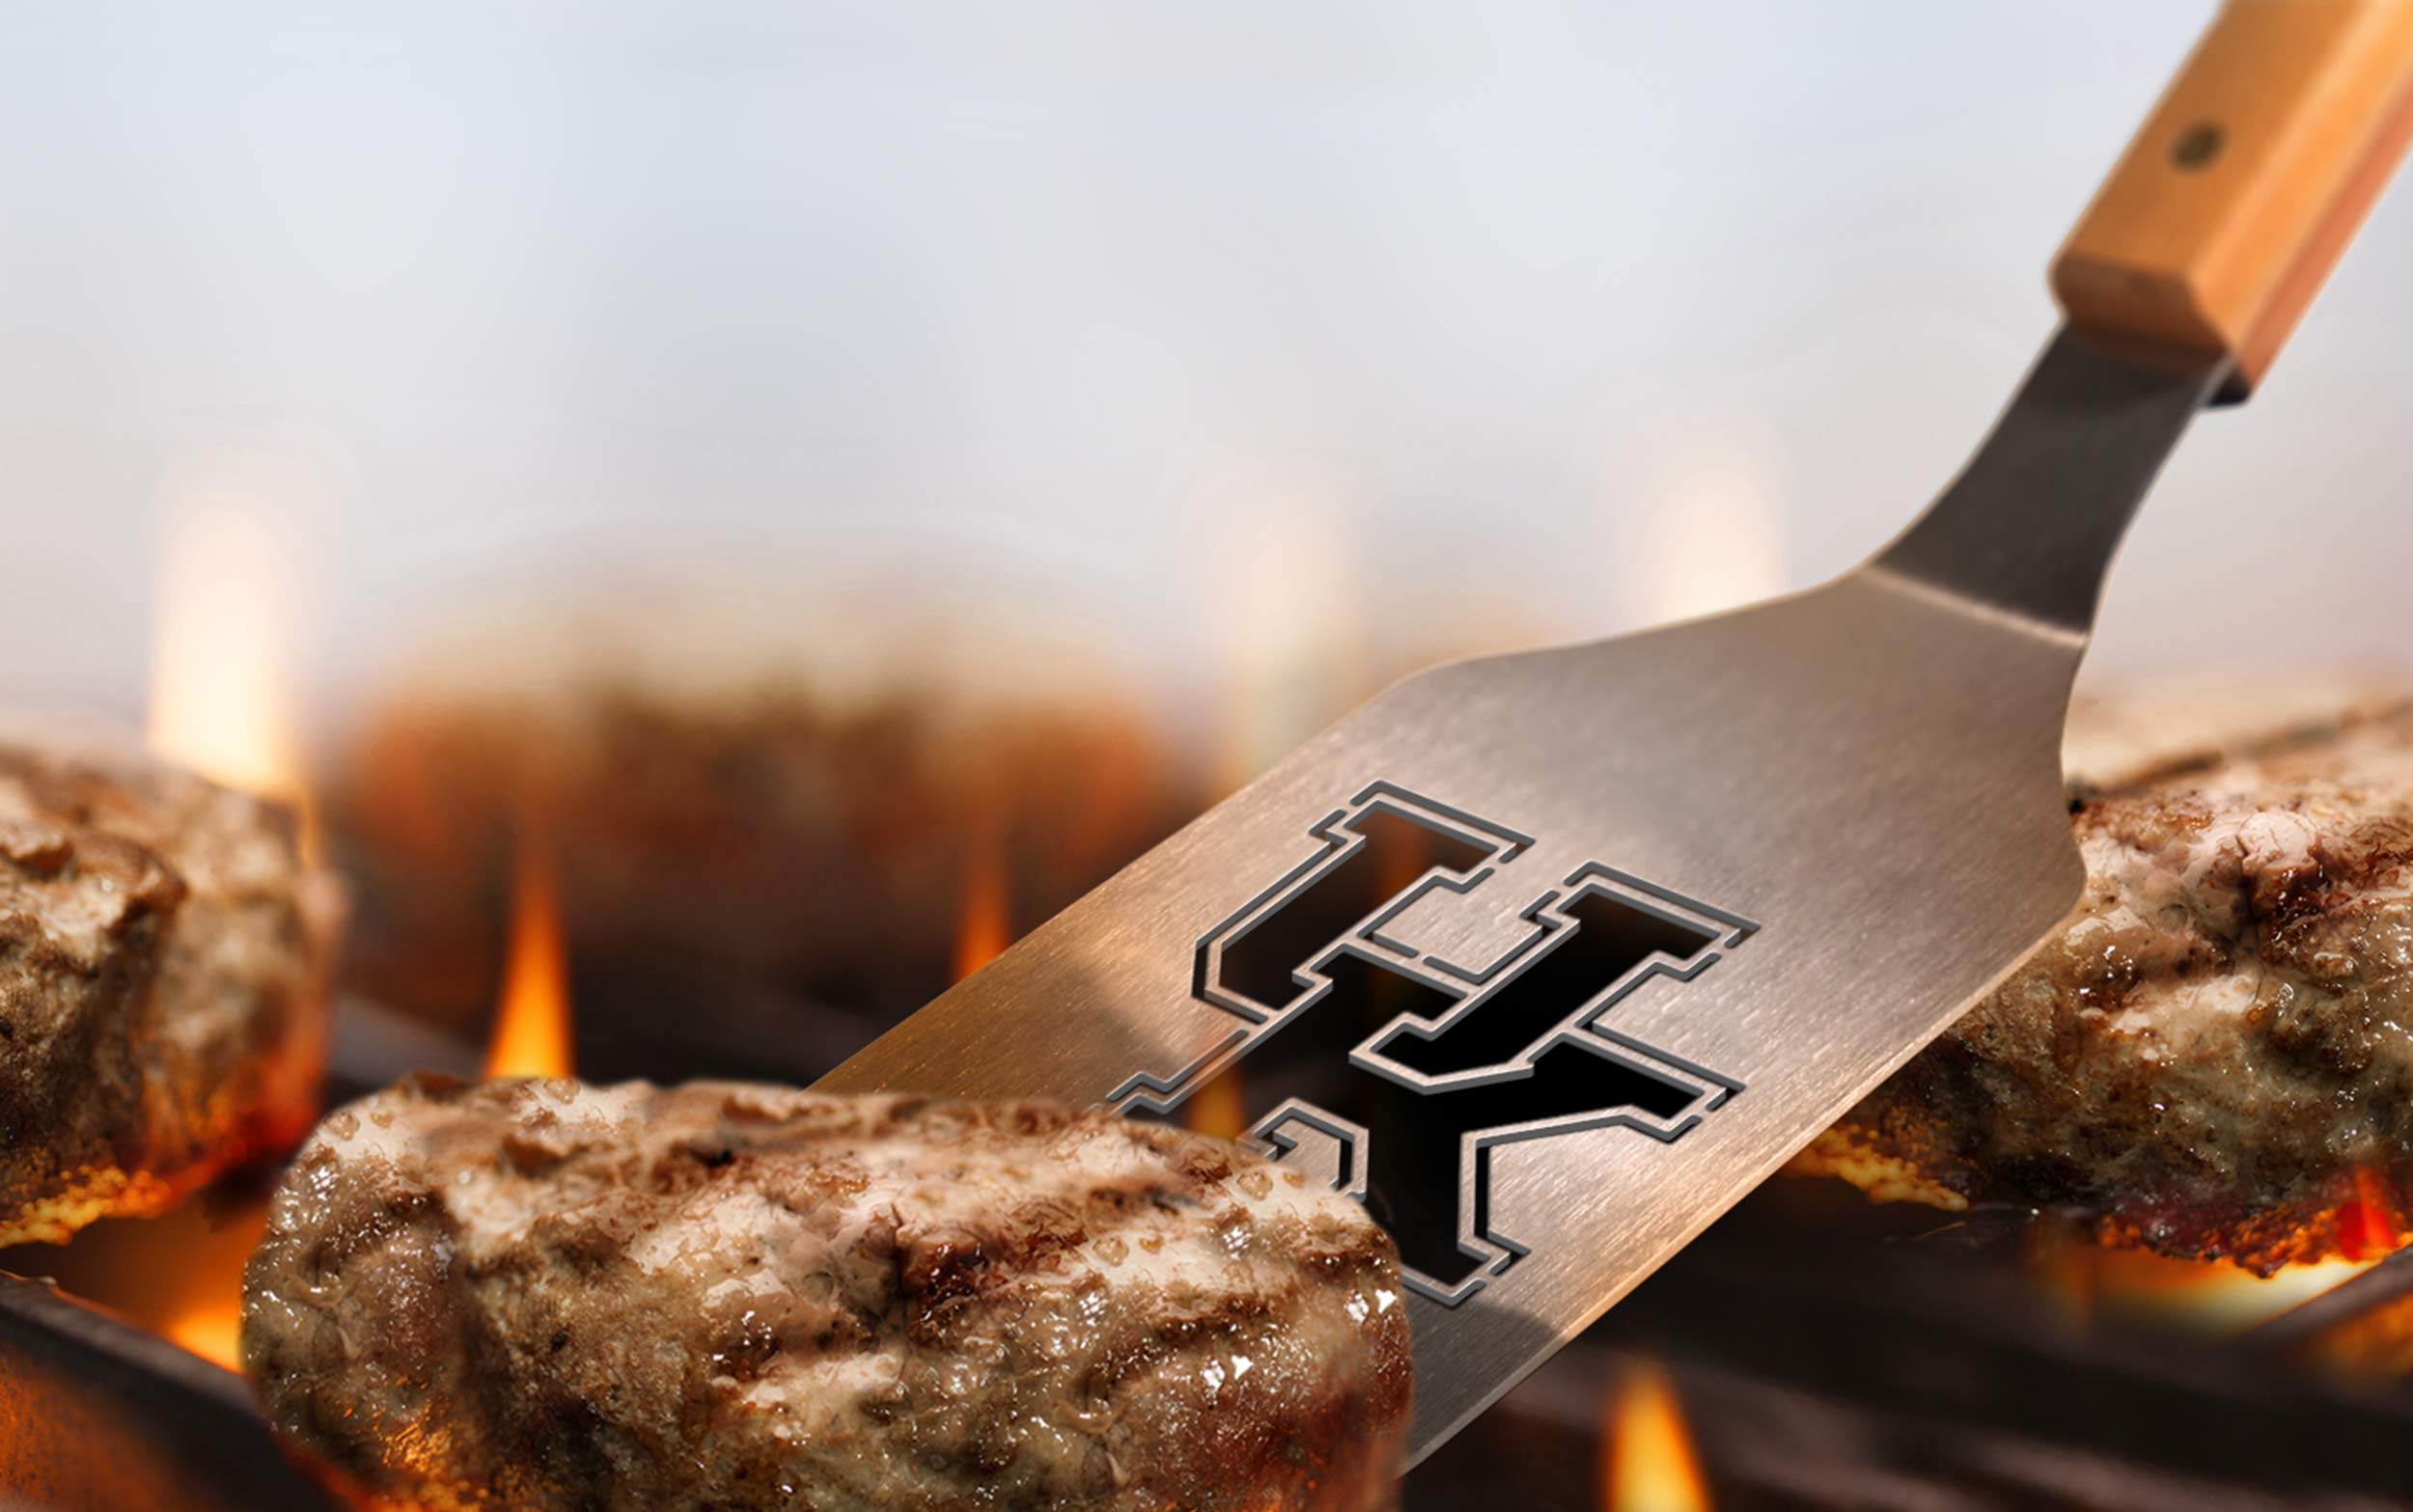 NCAA Kentucky Wildcats Classic Series Sportula Stainless Steel Grilling Spatula by YouTheFan (Image #4)